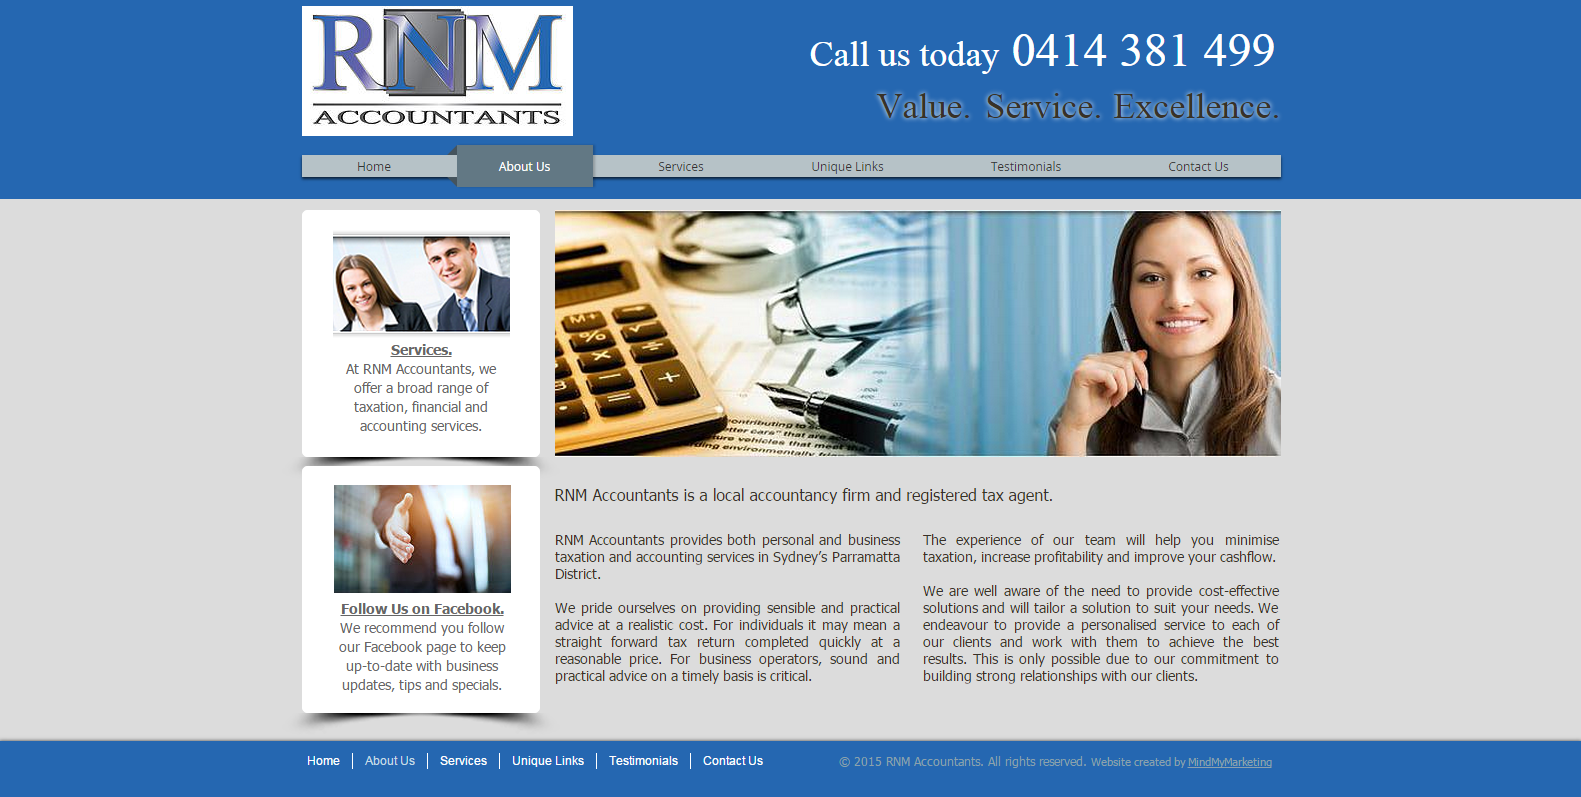 RNM Accountants